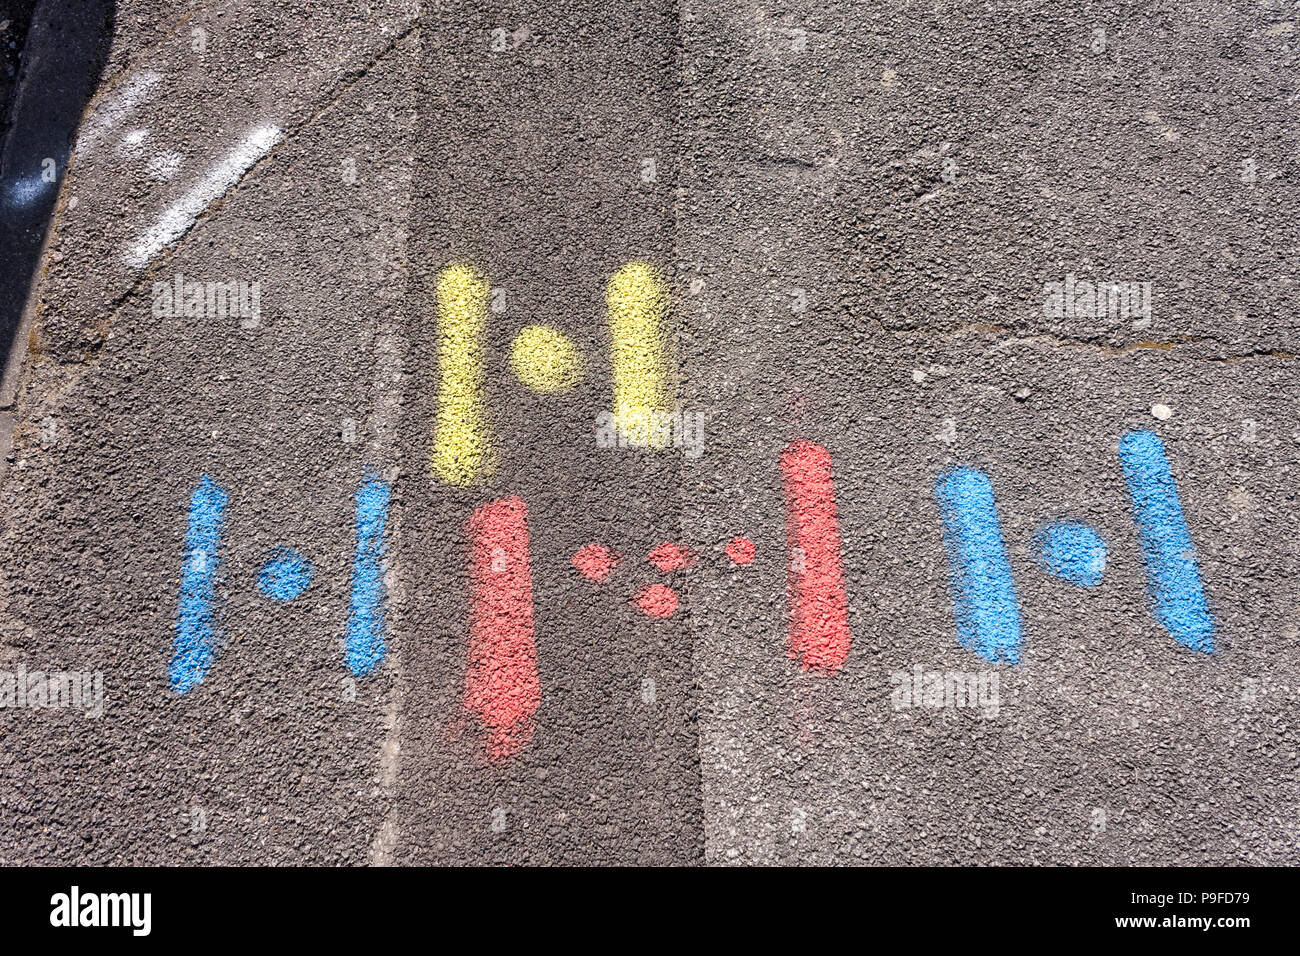 Spray painted markings left on road by contractors to indicate positioning of water, gas and electric utilities. Stock Photo